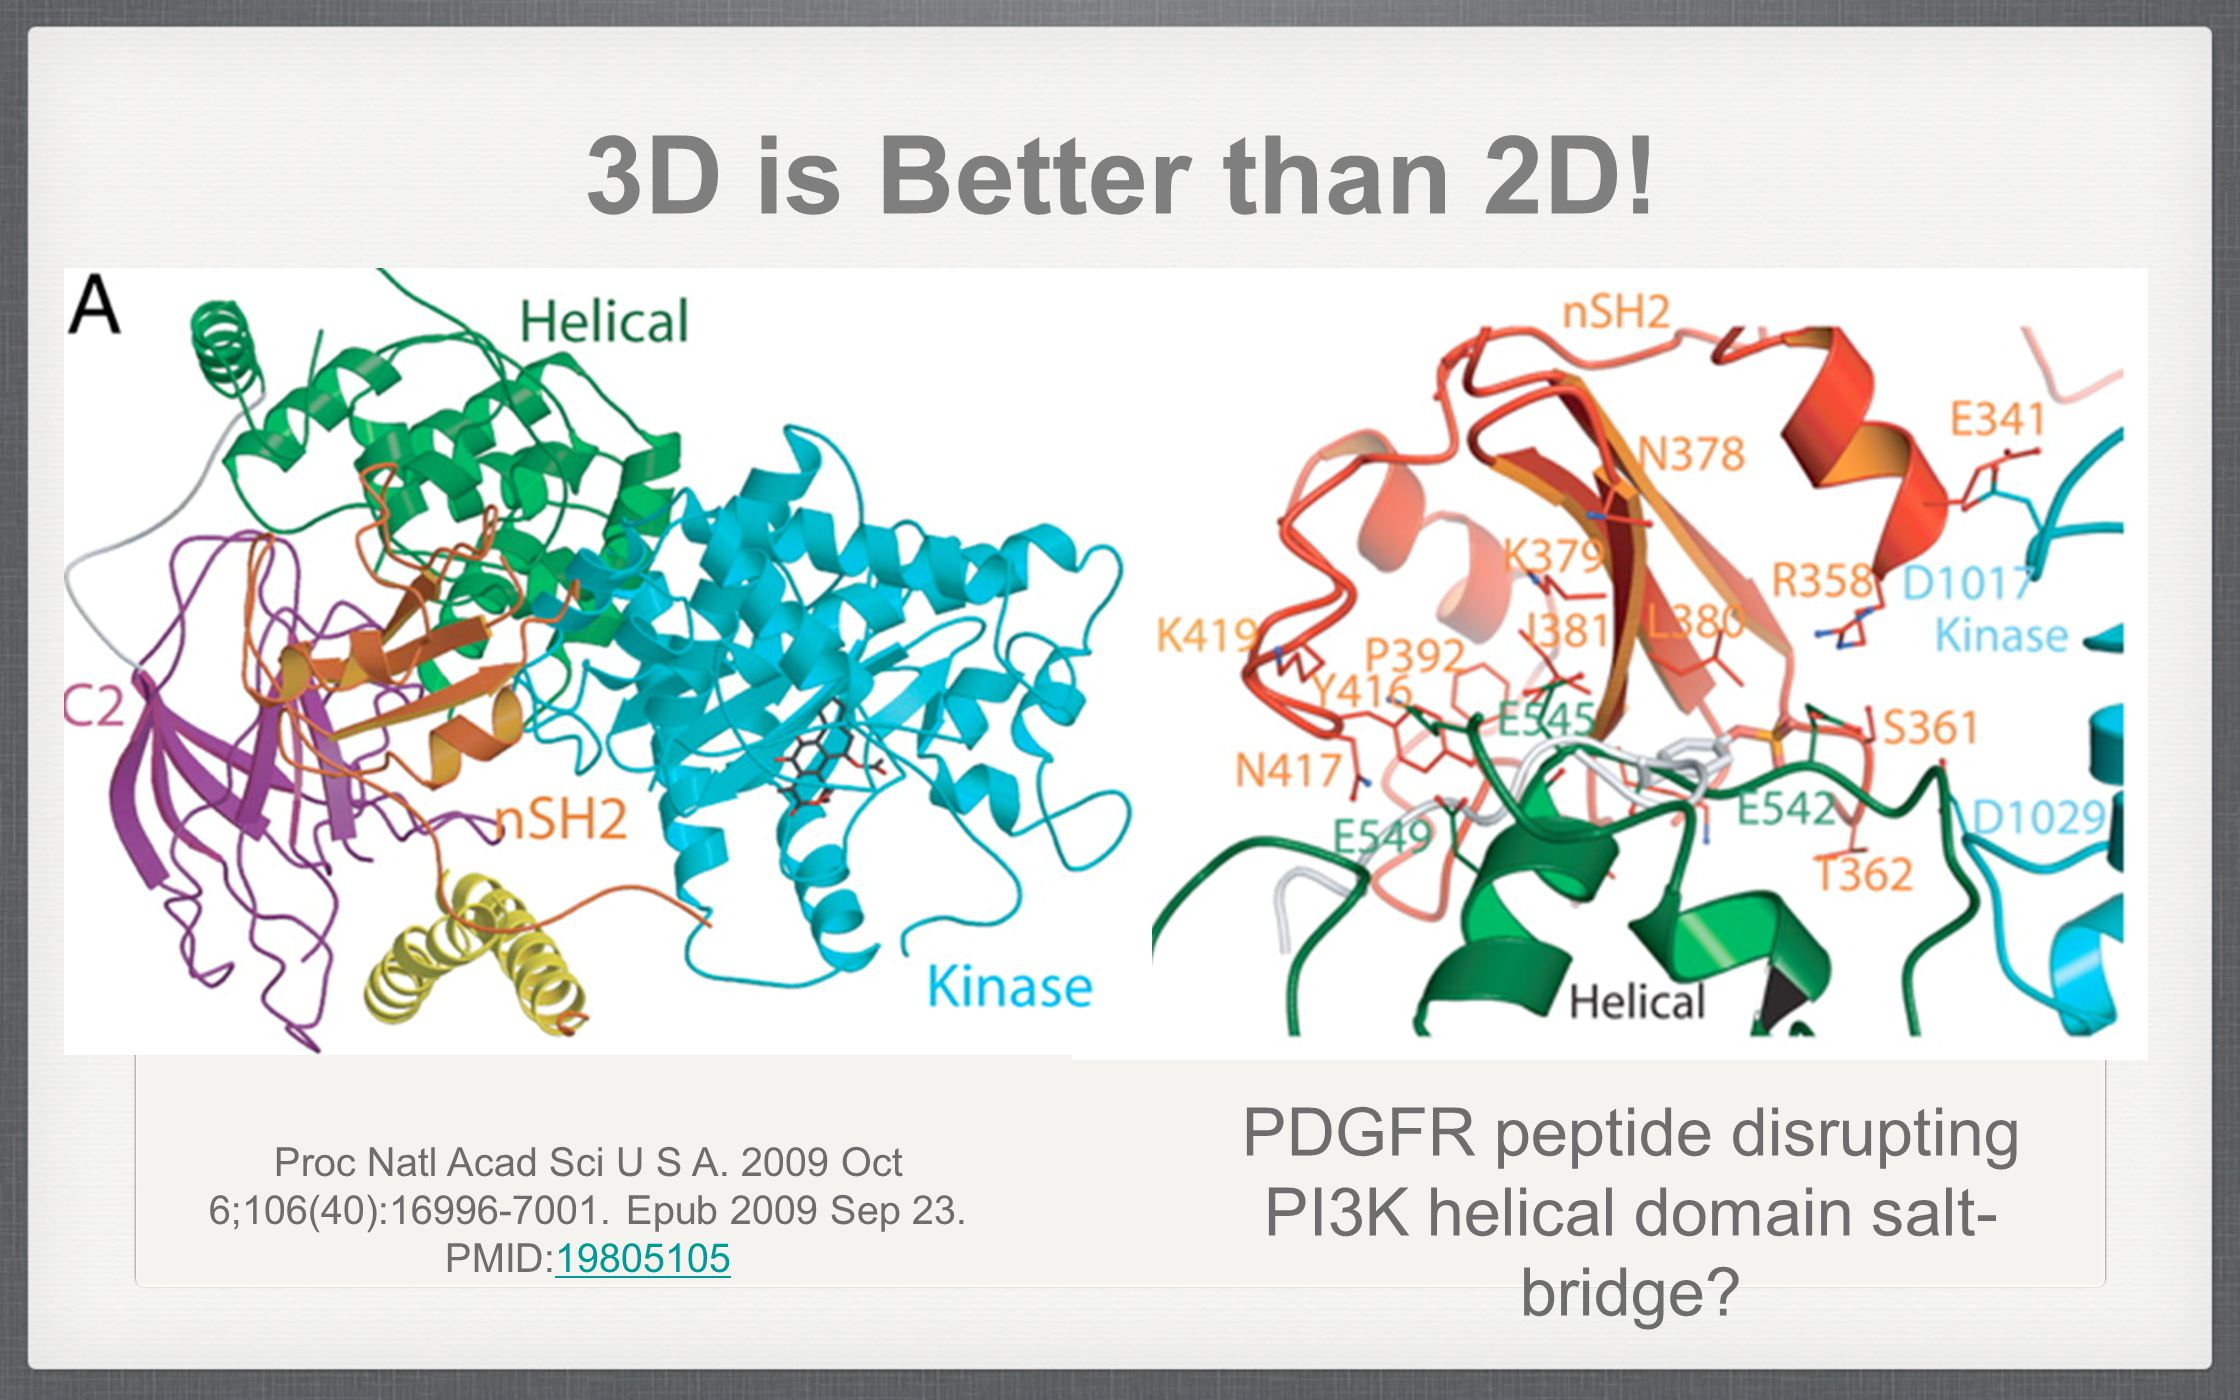 3D is Better than 2D. Proc Natl Acad Sci U S A. 2009 Oct 6;106(40):16996-7001.